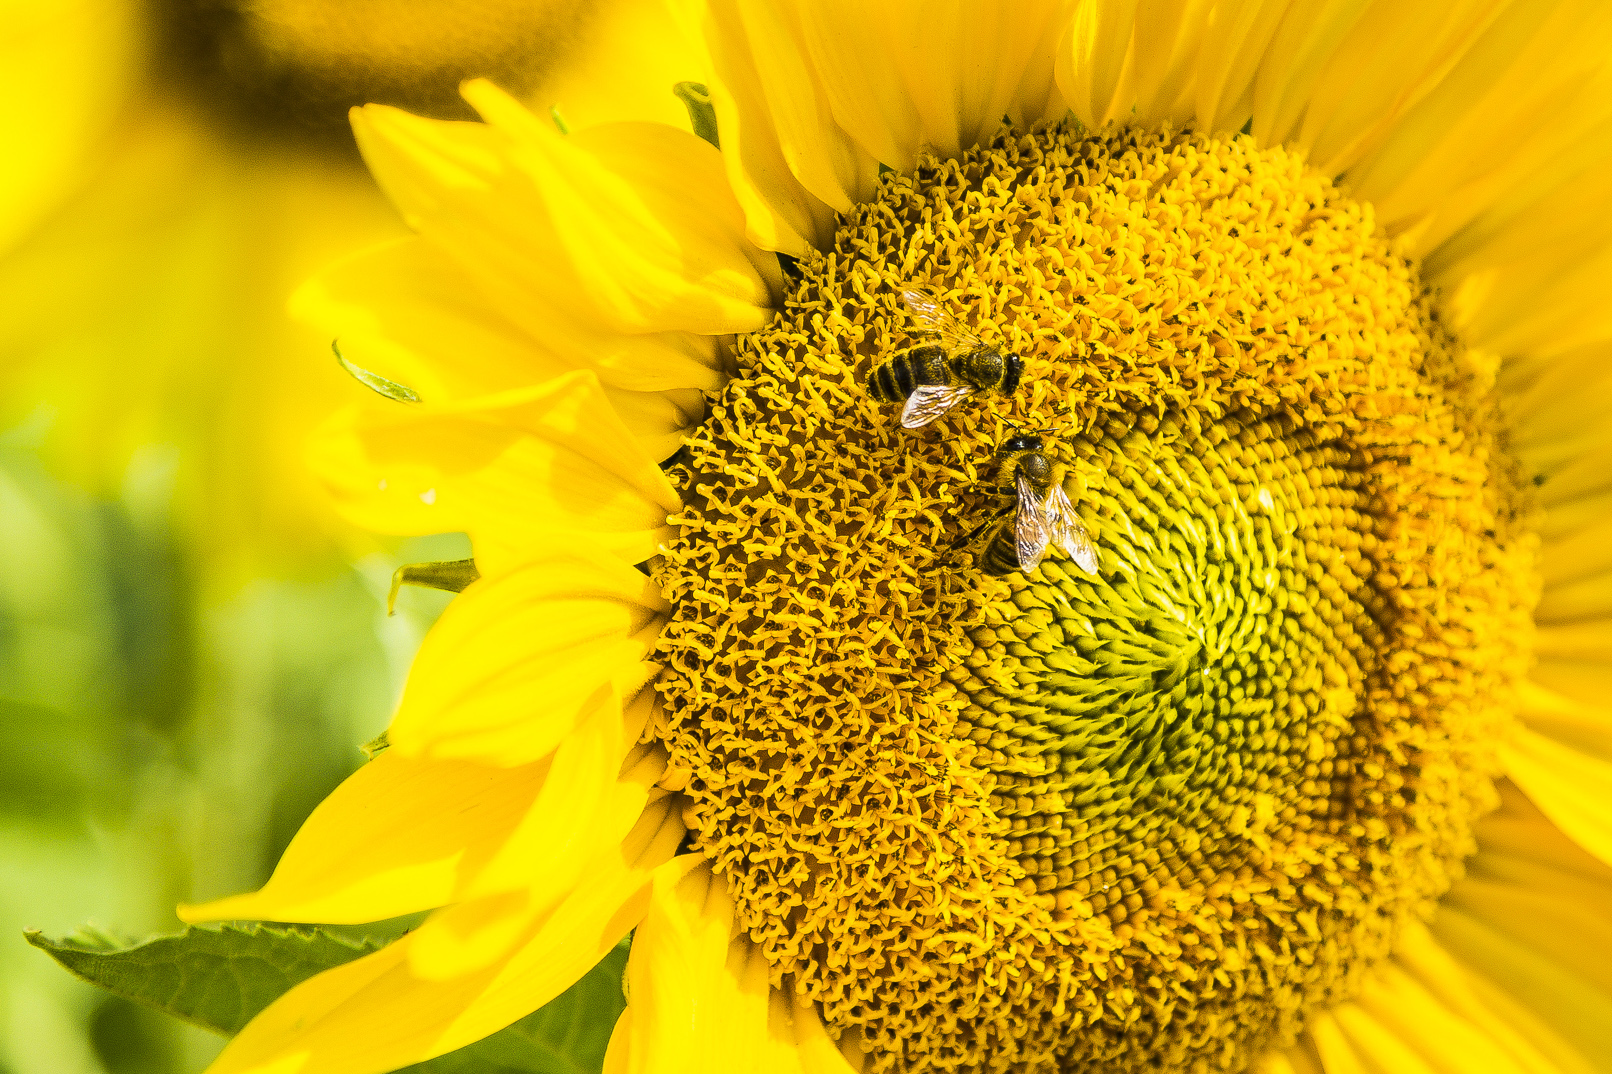 Honeybees forage for nectar, visiting hundreds of flowers a day to provide food for their entire colonies. That makes them ideal study subjects, according to researchers. Image courtesy of RMIT University